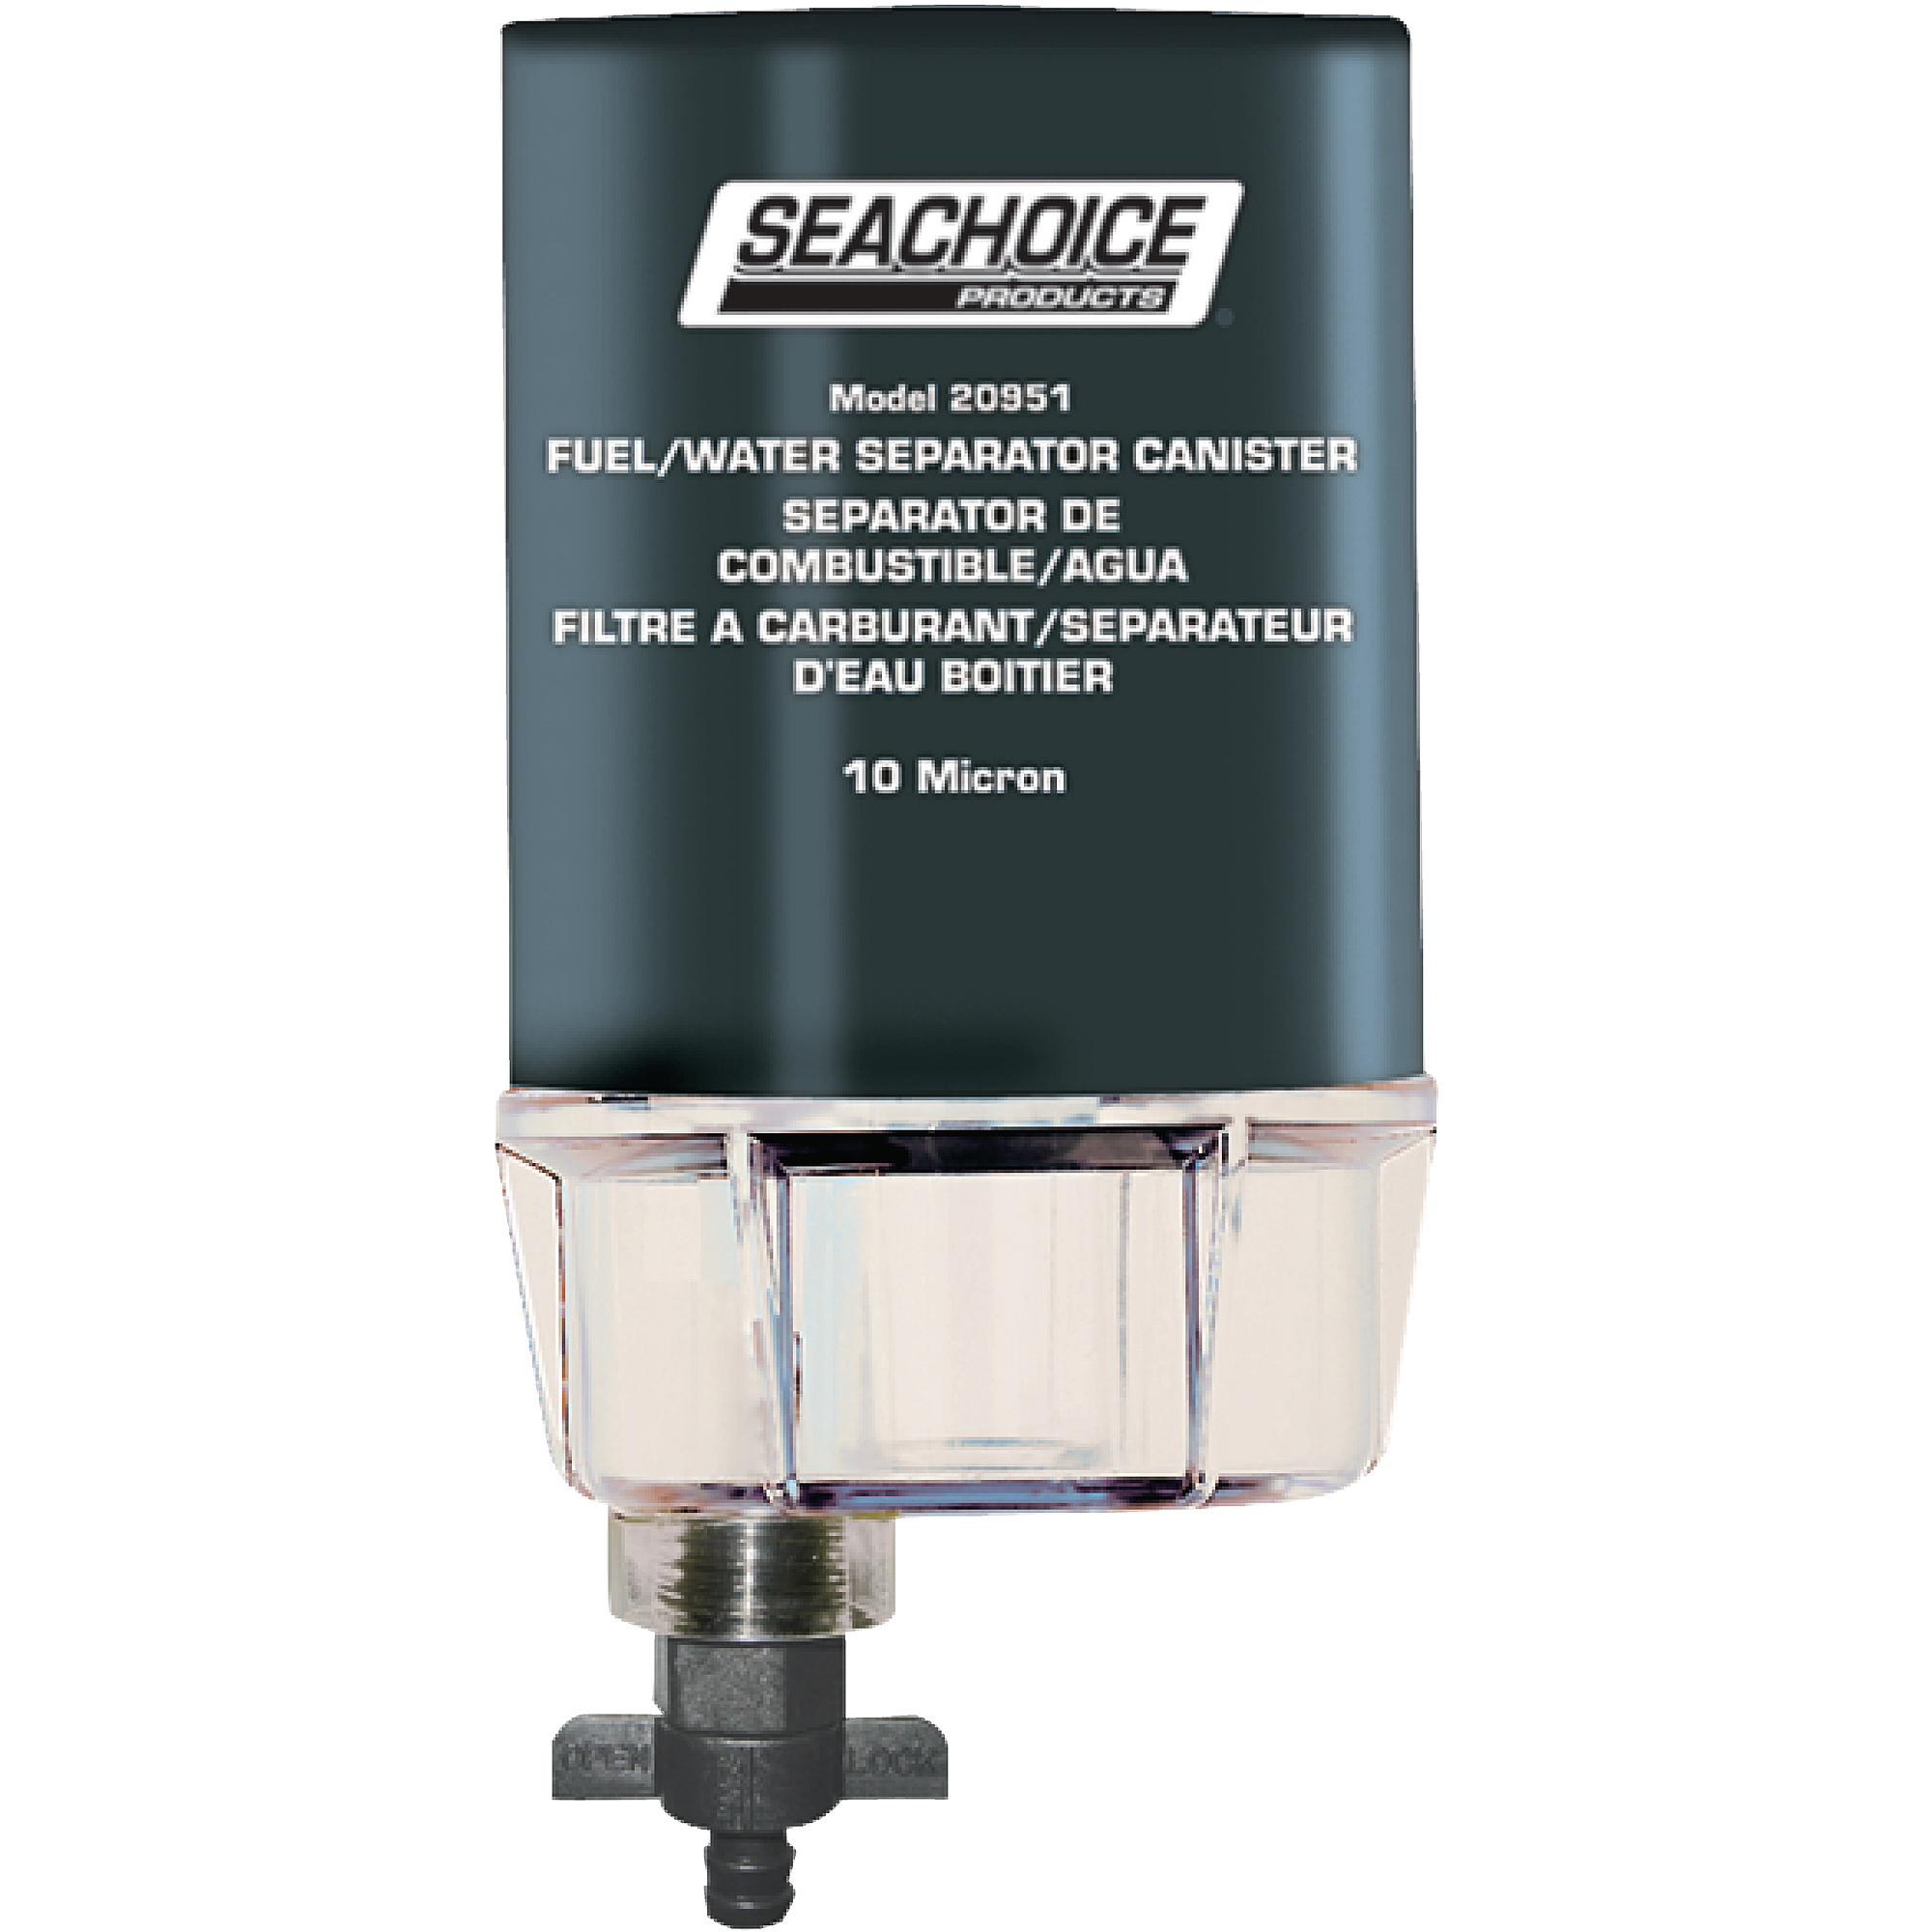 Seachoice 10 Micron Fuel/Water Separating Filter with See-Thru Plastic Bowl  for Outboards - Walmart.com